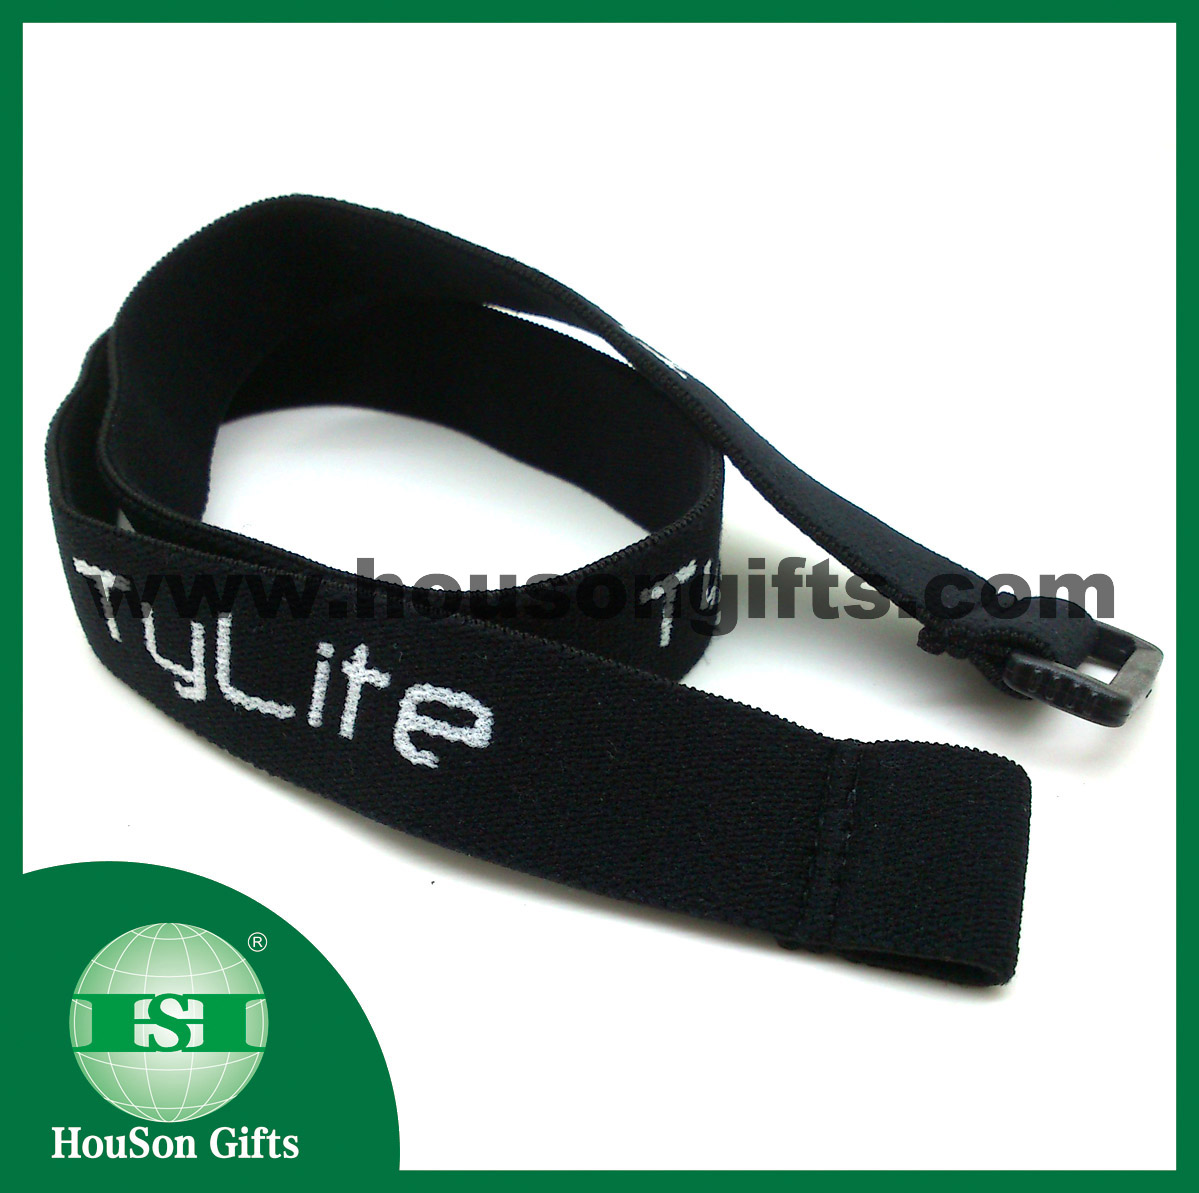 LED headlamp Jacquard strap